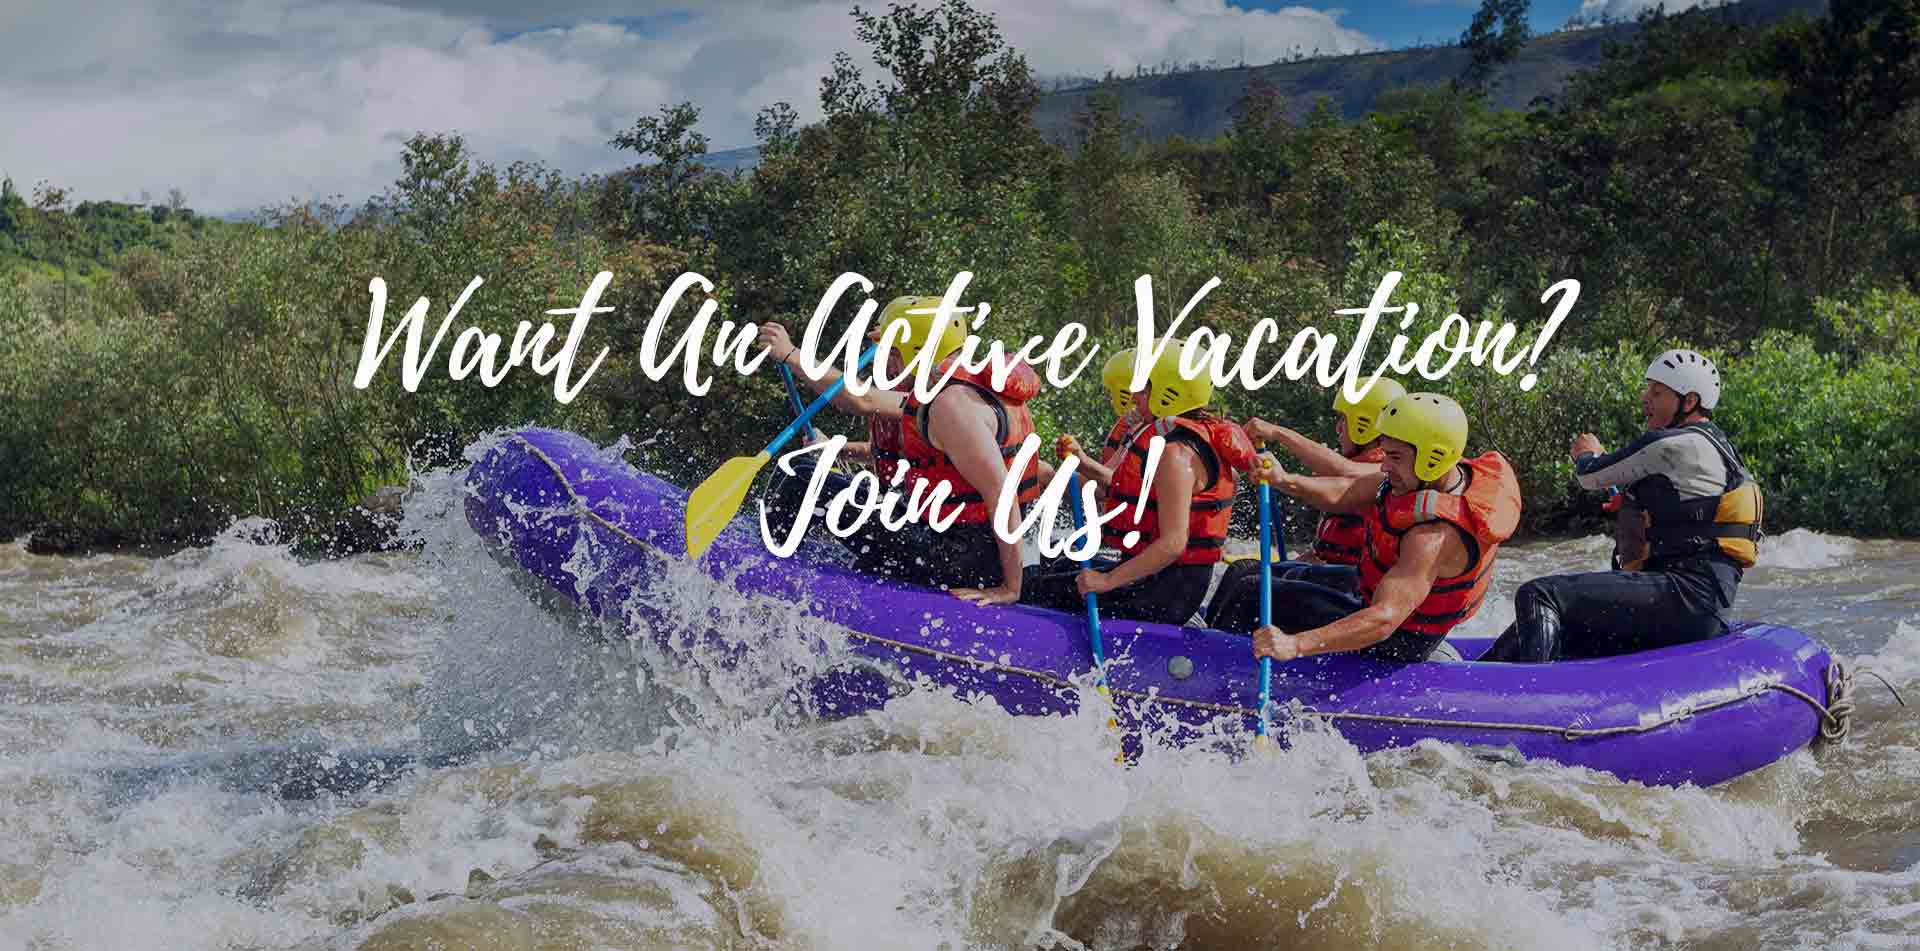 South America Peru Urubamba River group whitewater rafting Want an active vacation join us - luxury vacation destinations